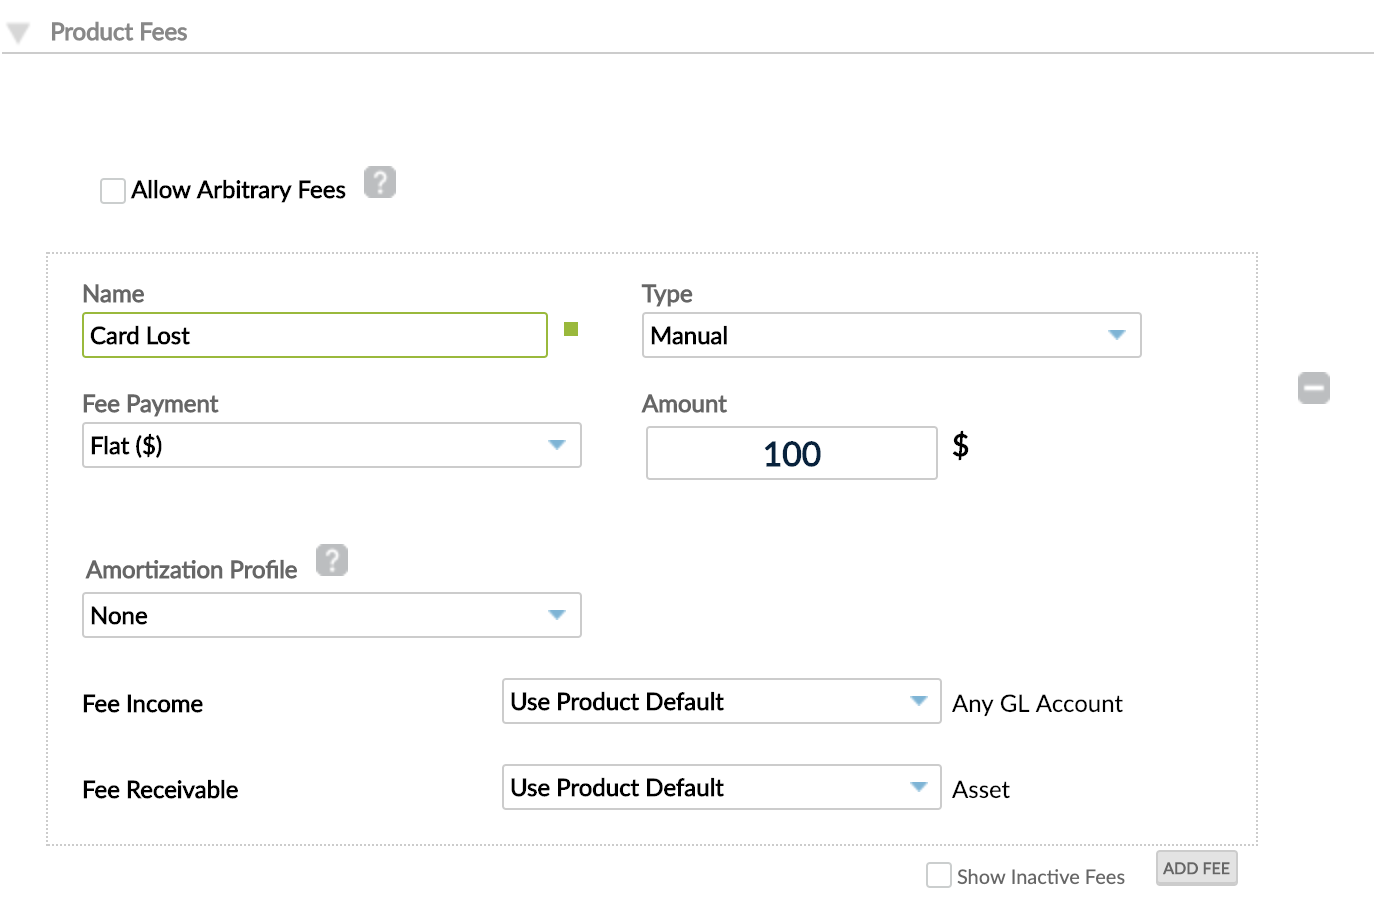 Product Creation, Product Fees section with Name, Type, Fee Payment, Amount, Amortization Profile and Fee Income and Fee Receivable GL accounts.